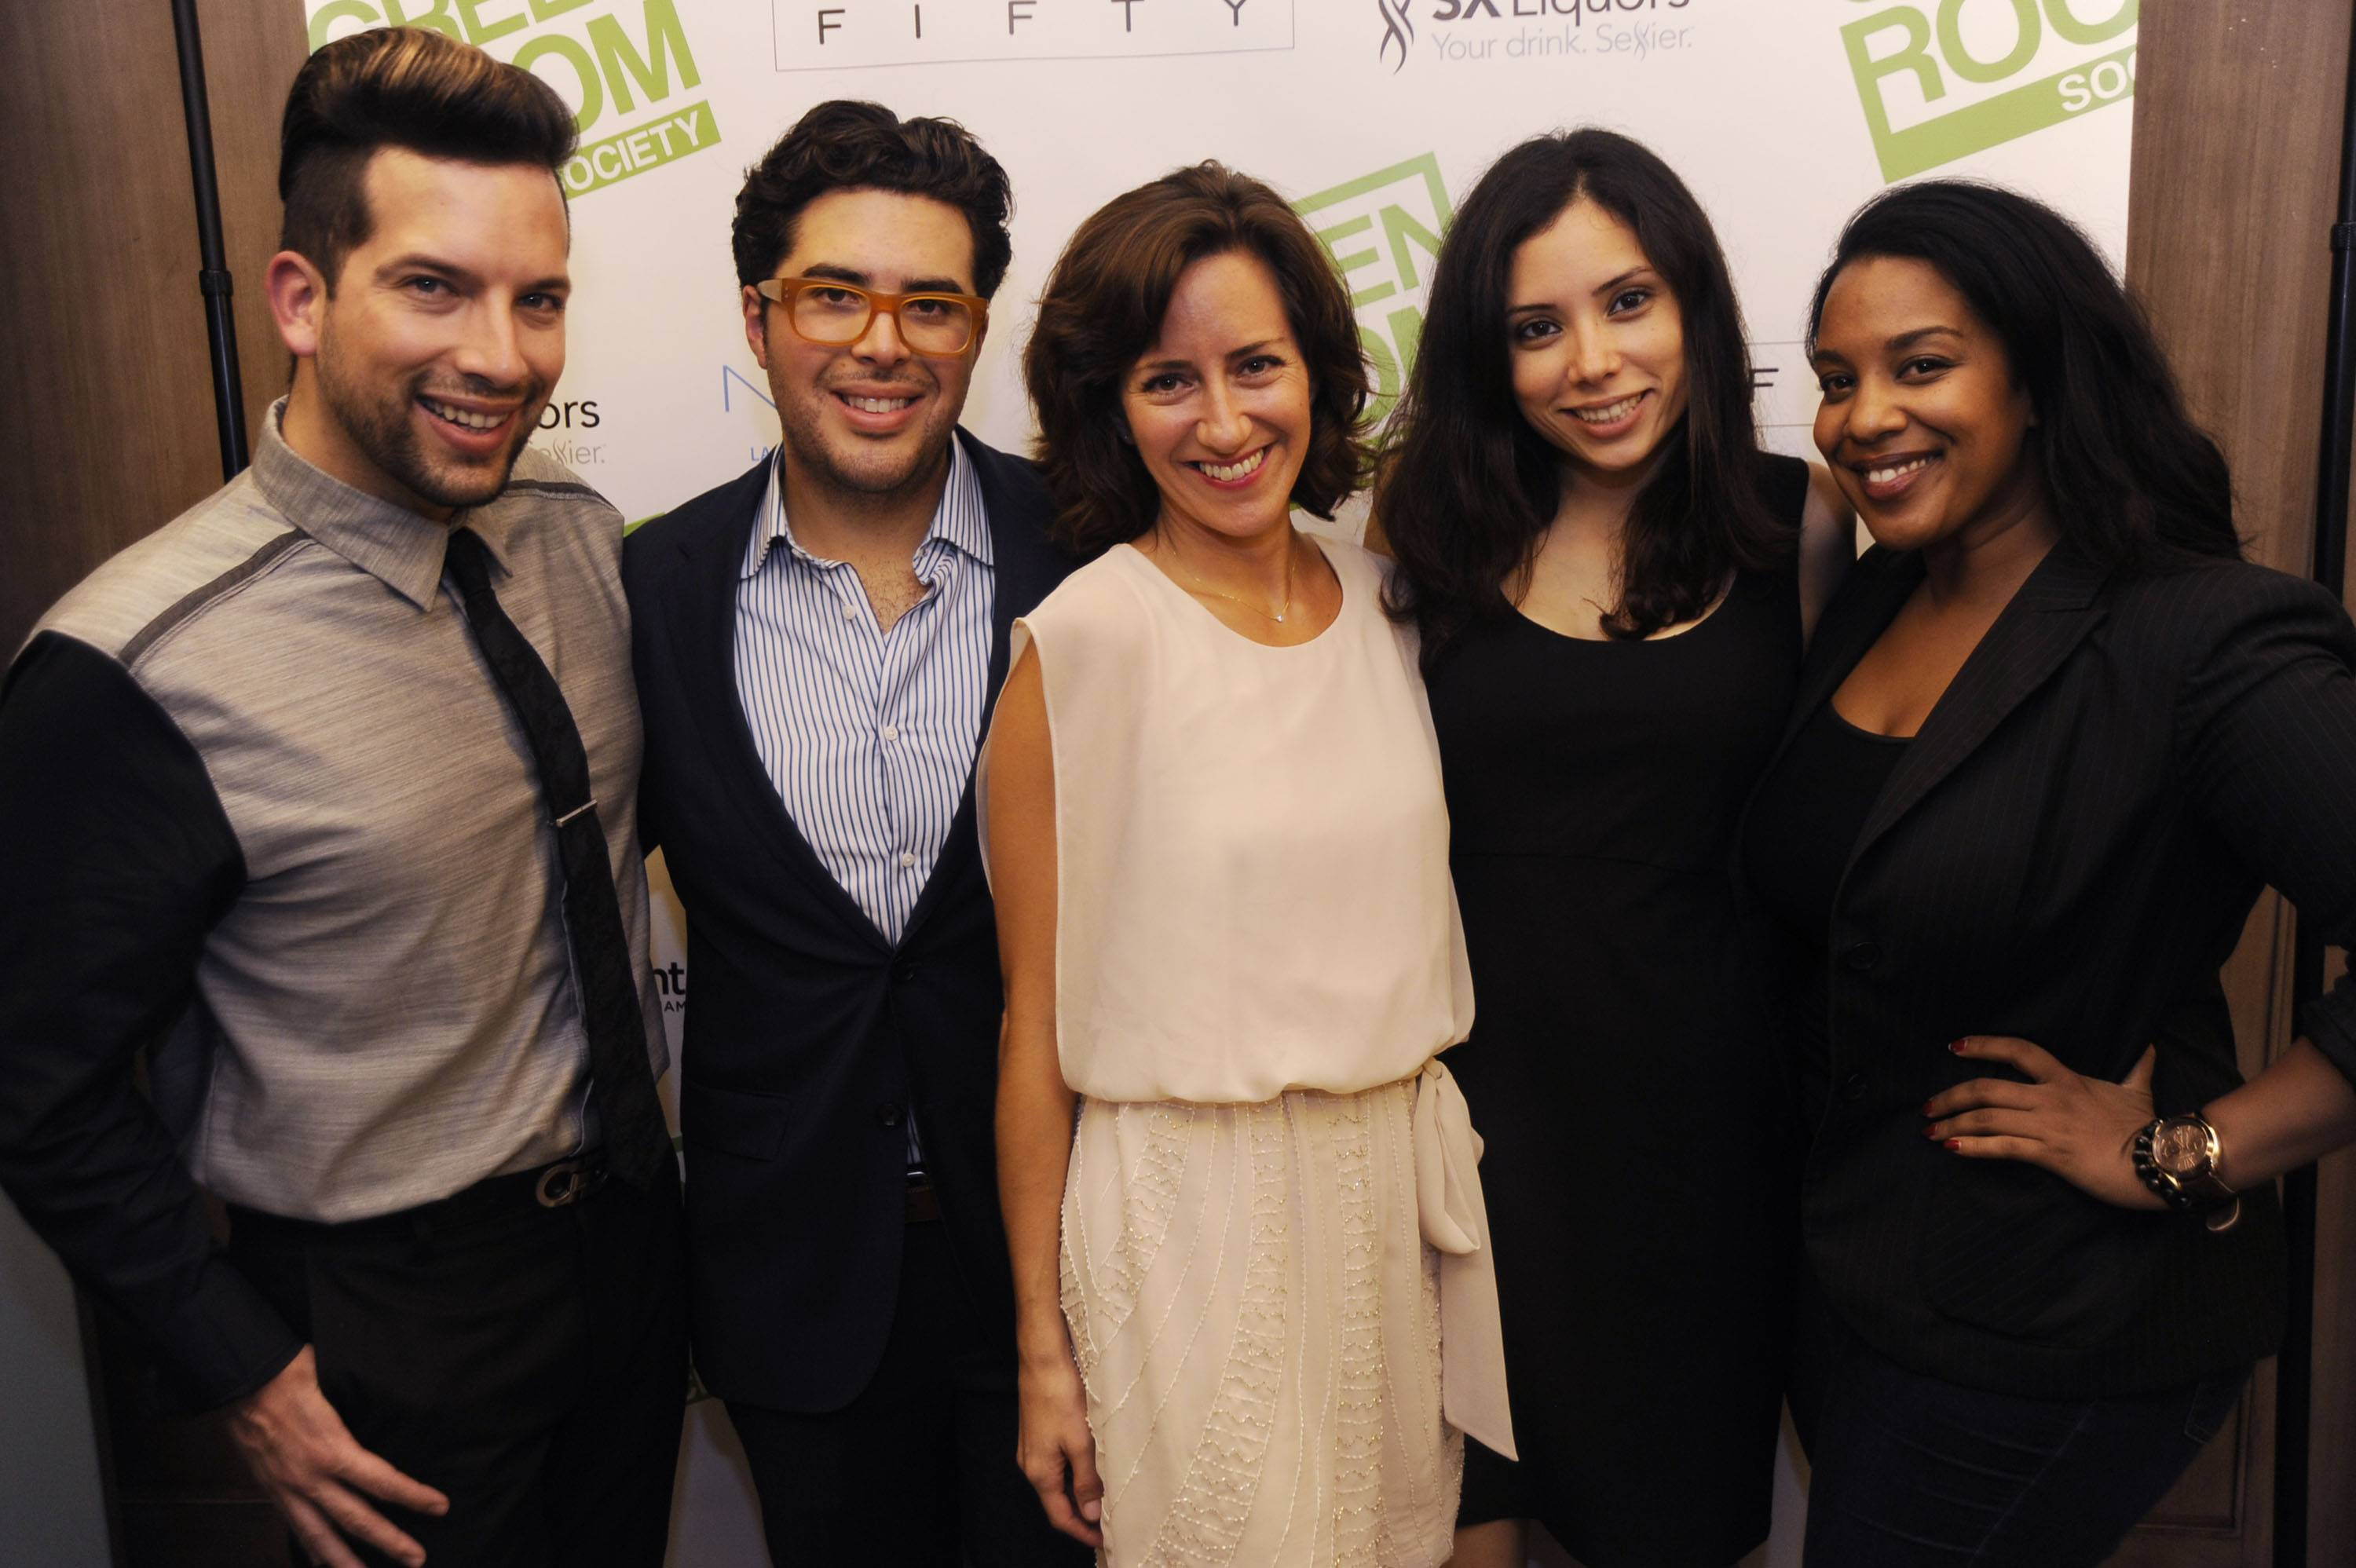 Gino Campodonico, Jorge Casariego, Eva Silverstein, Maria Arguello, & Vanessa James at the Green Room Society's season kick-off event